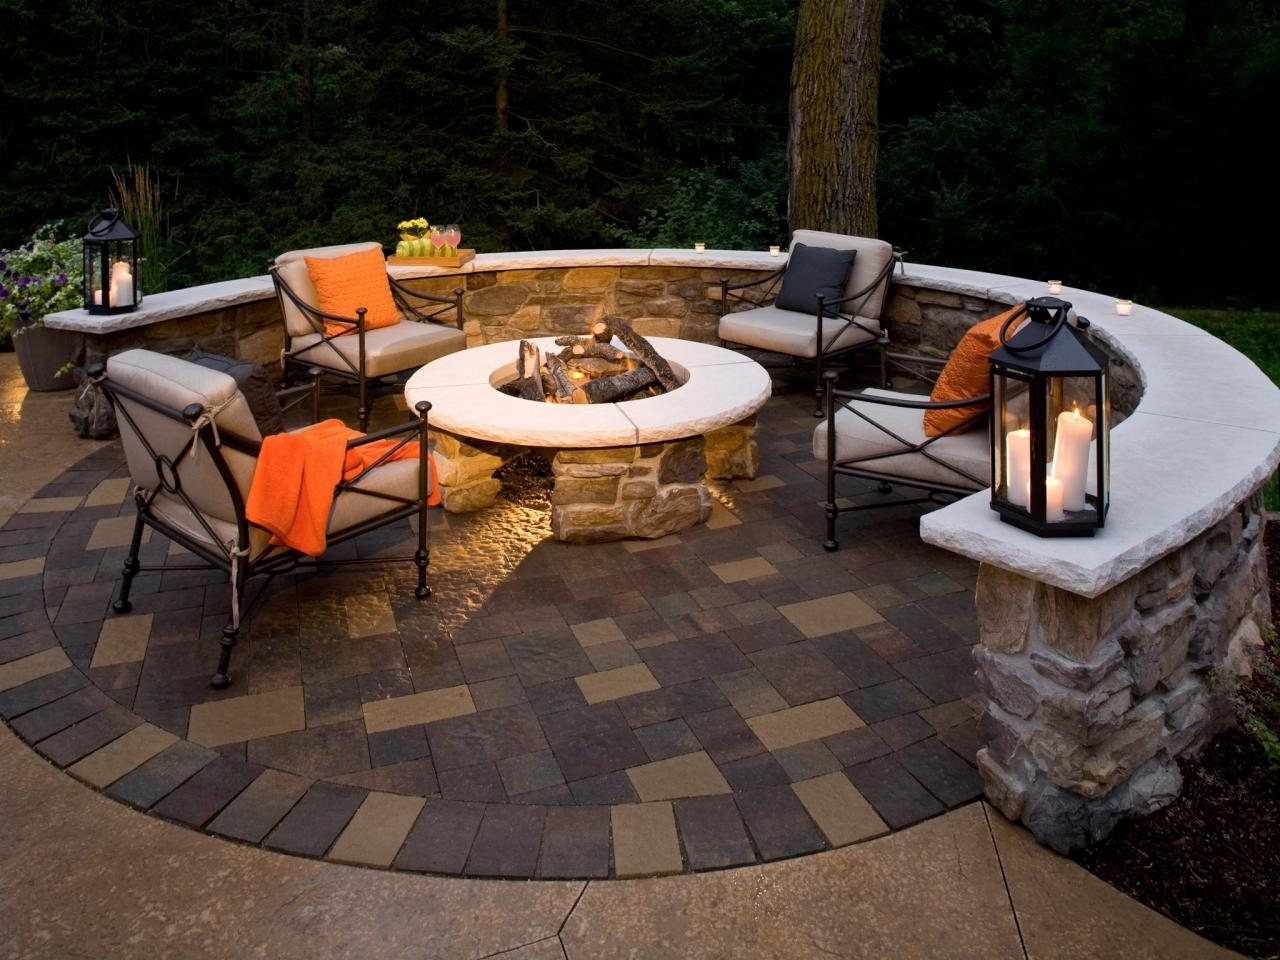 10 Fashionable Patio With Fire Pit Ideas